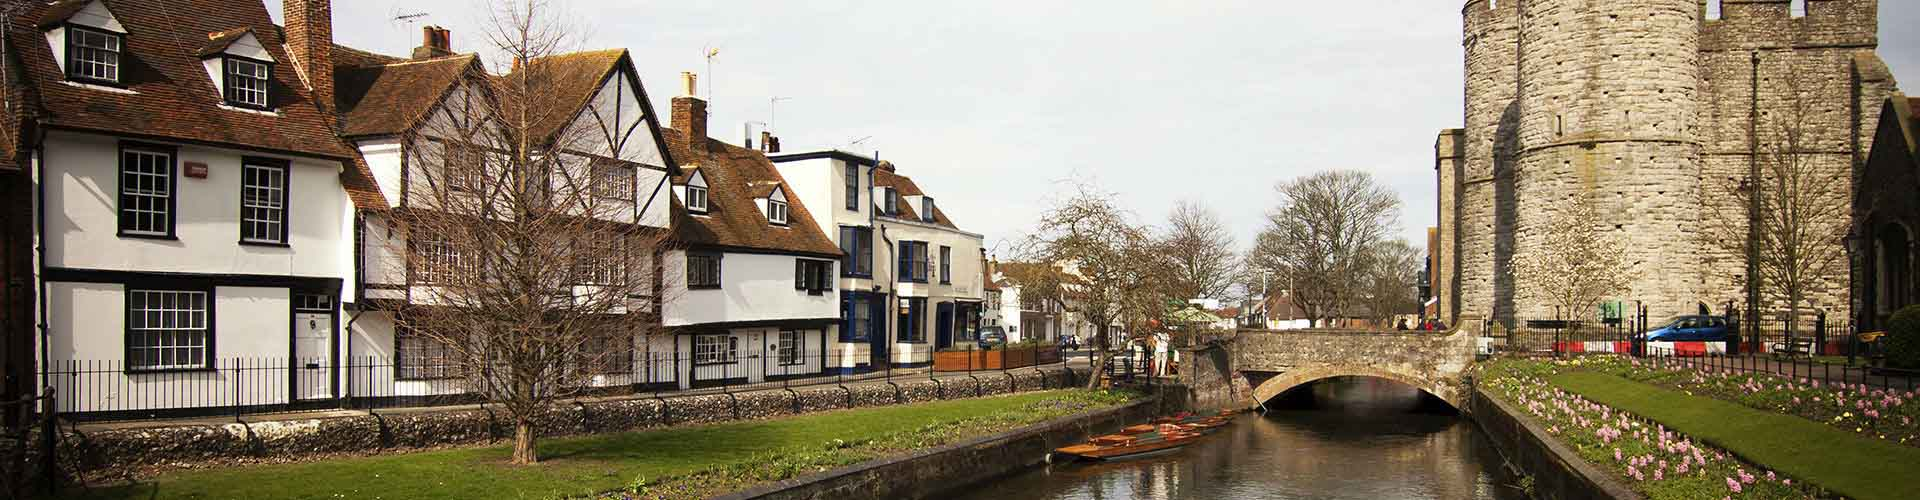 Canterbury – Hostels in Canterbury. Maps for Canterbury, Photos and Reviews for each hostel in Canterbury.